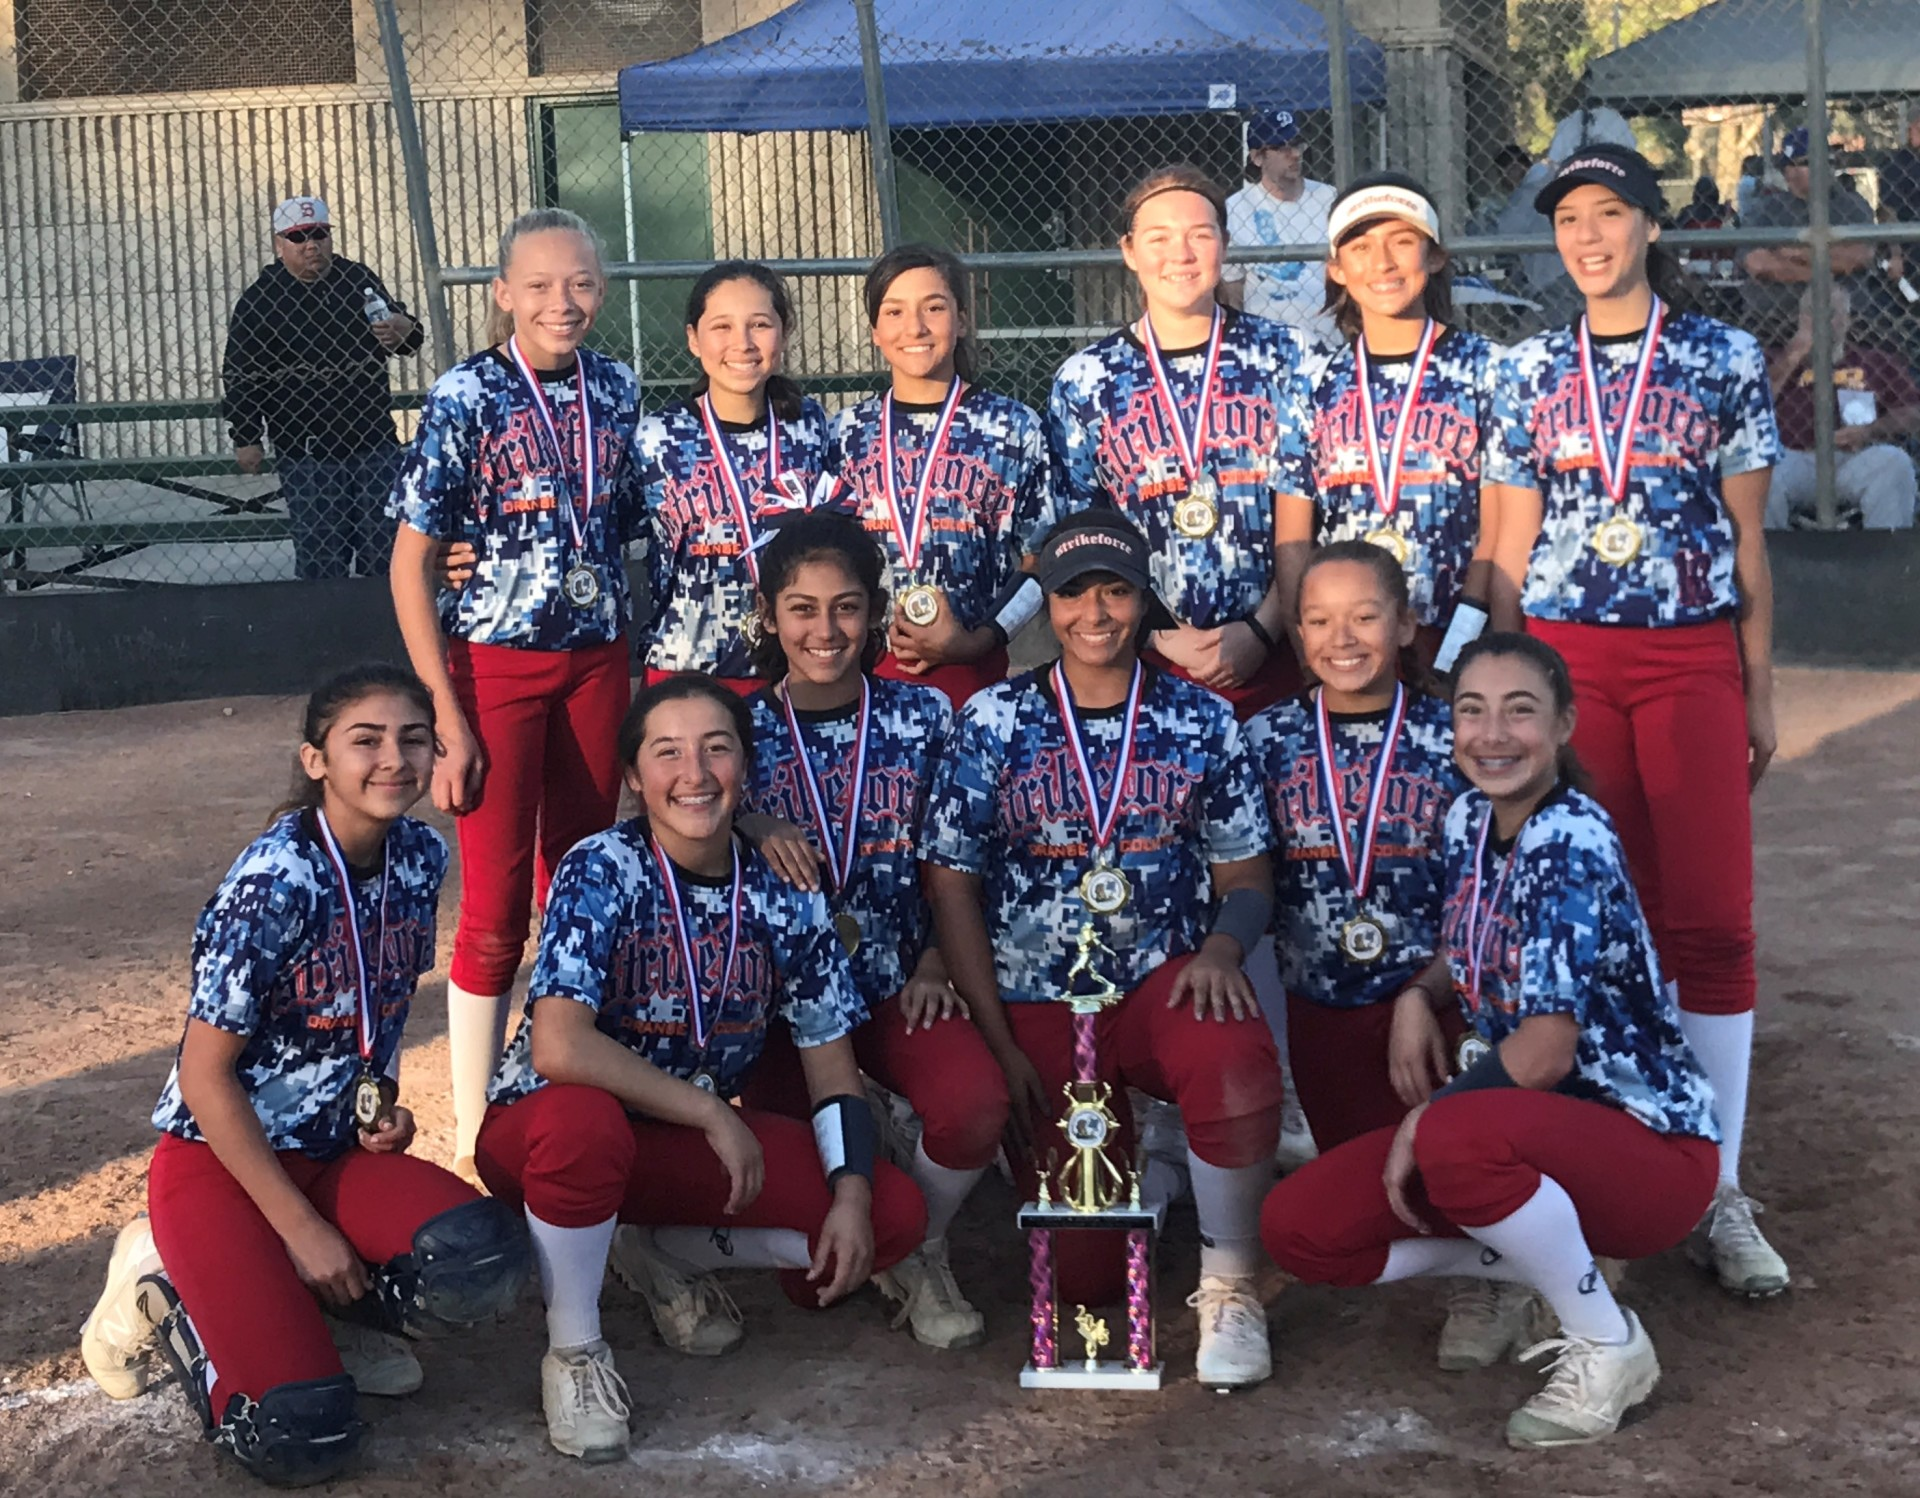 14u - 1st Place - OC Strikeforce - Adams